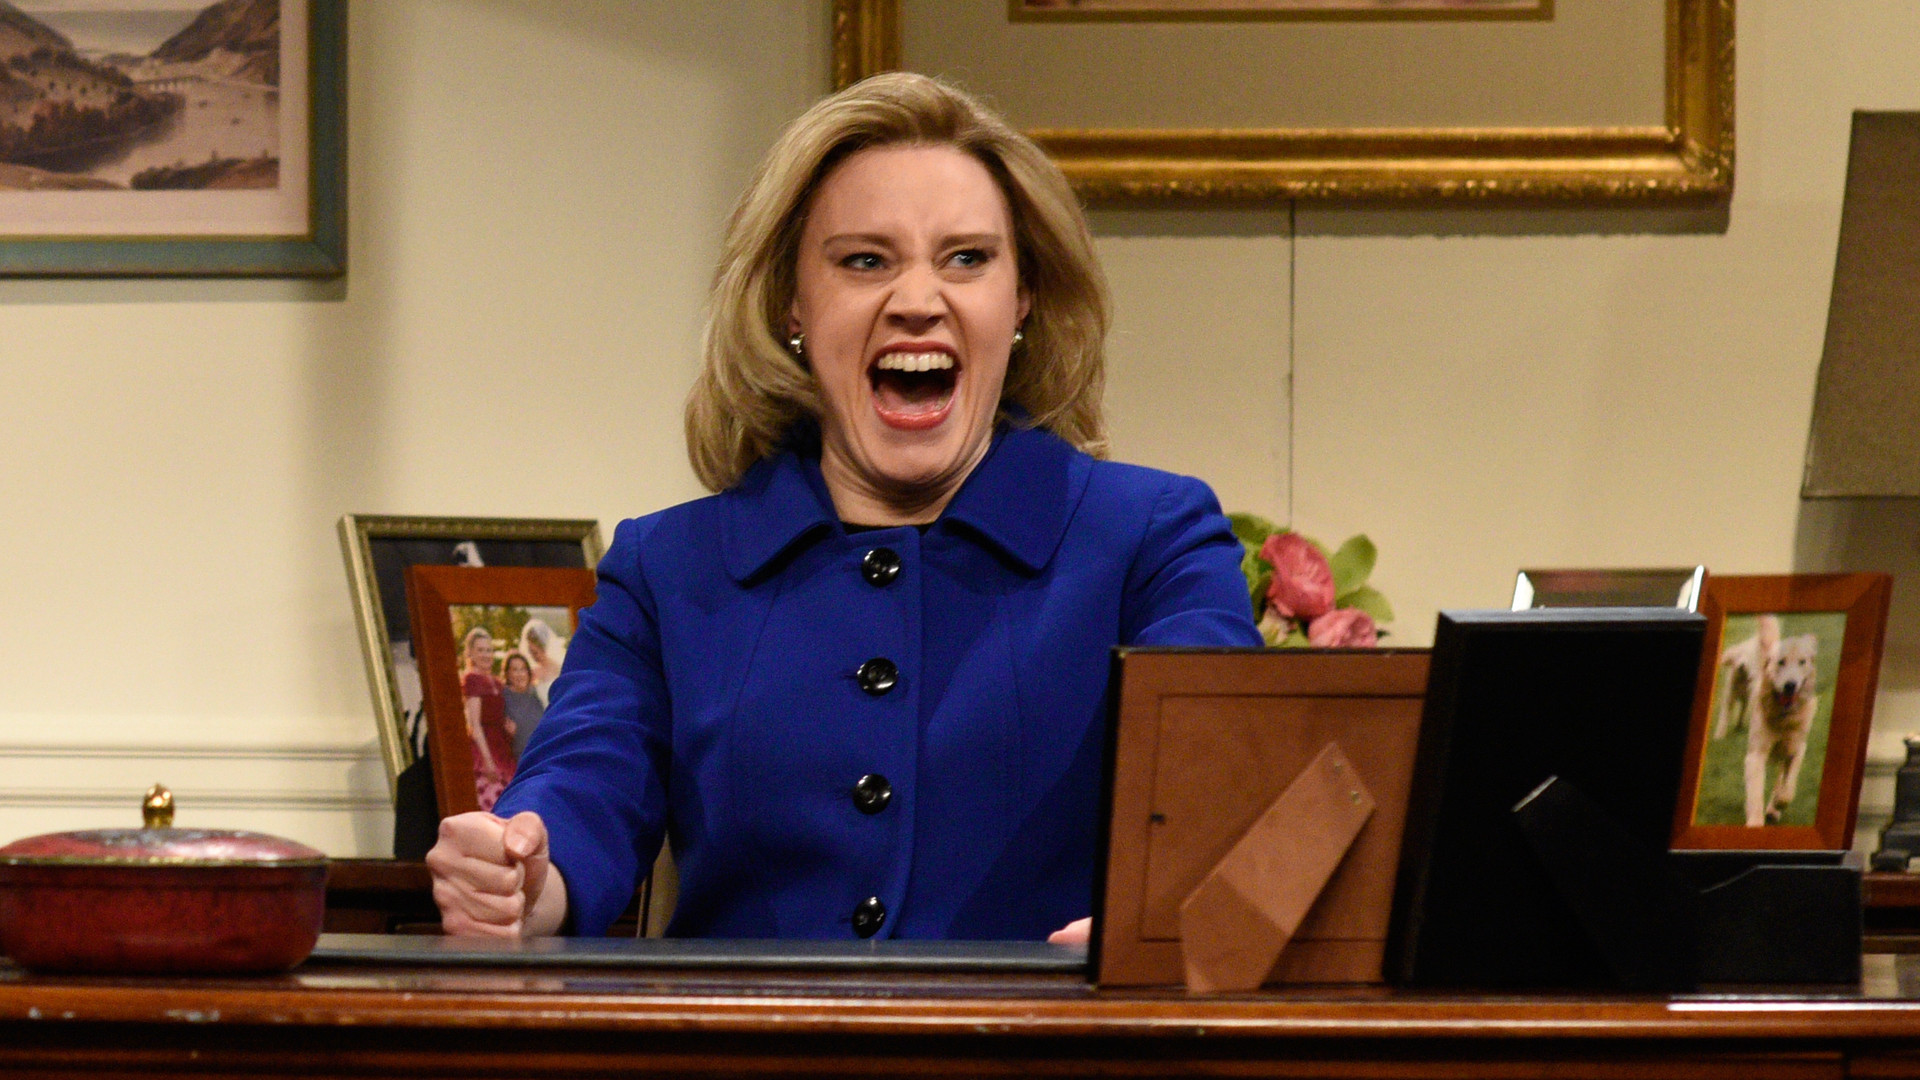 'SNL's' Kate McKinnon on Hillary Clinton: 'I just love her so dearly' – LA  Times